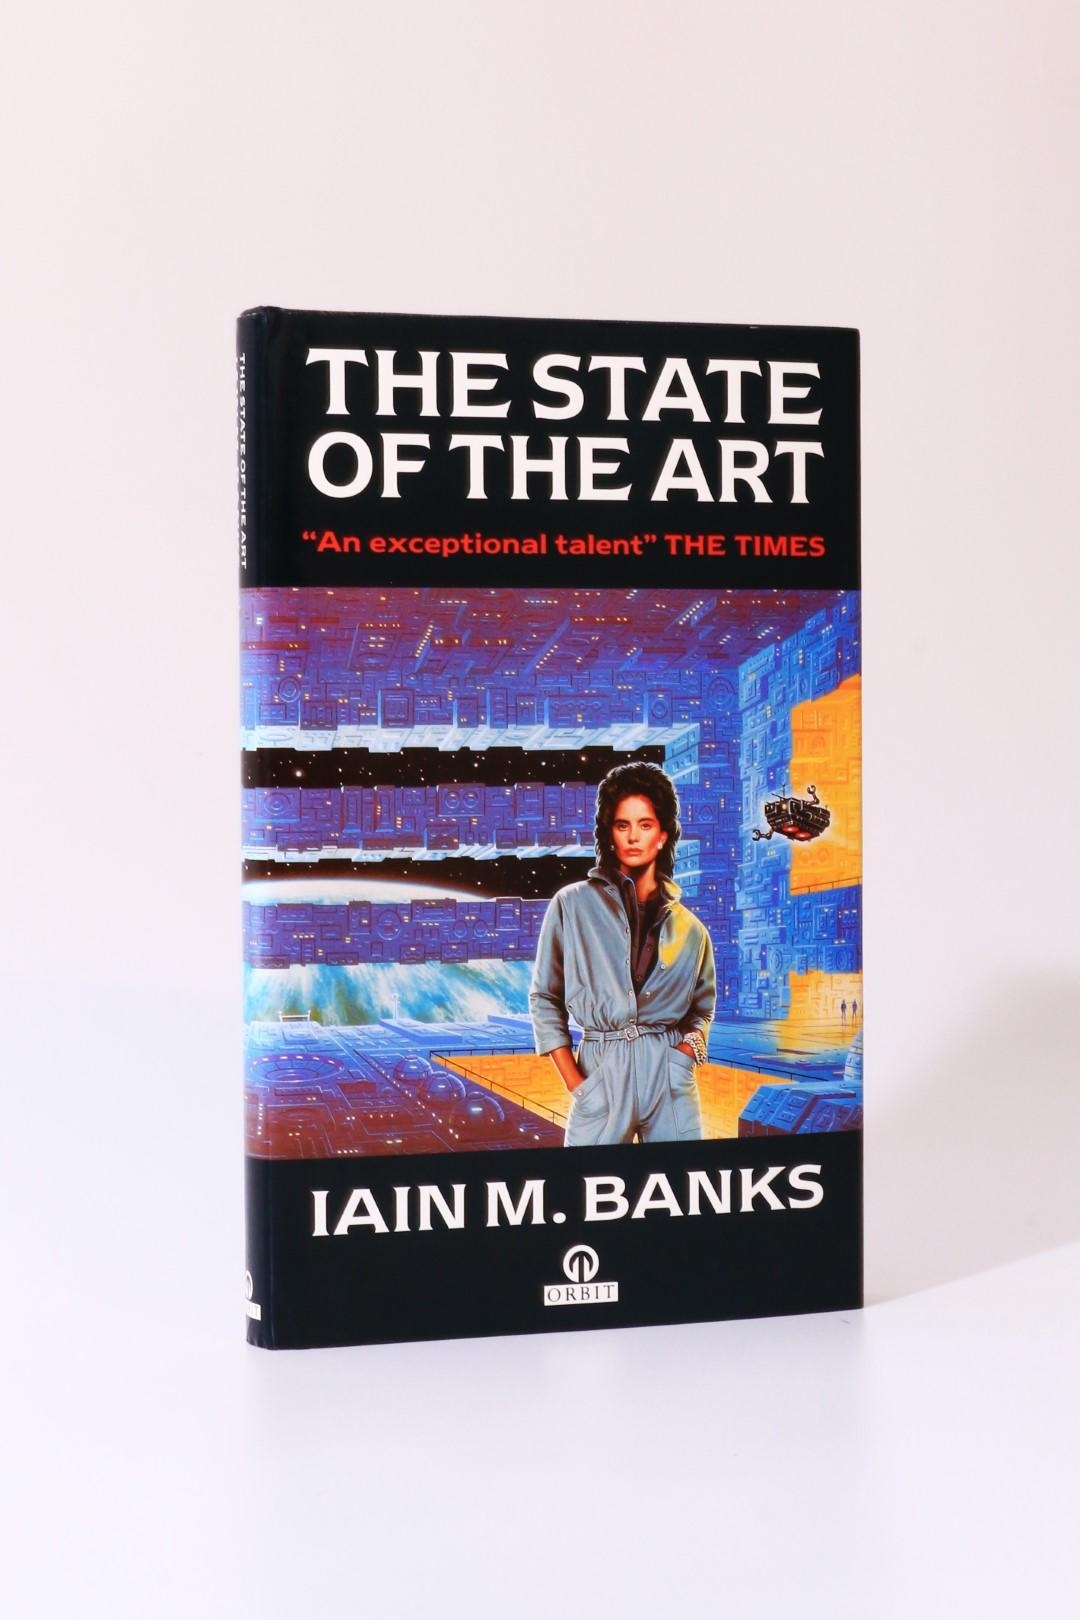 Iain M. Banks - The State of the Art - Orbit, 1991, First Edition.